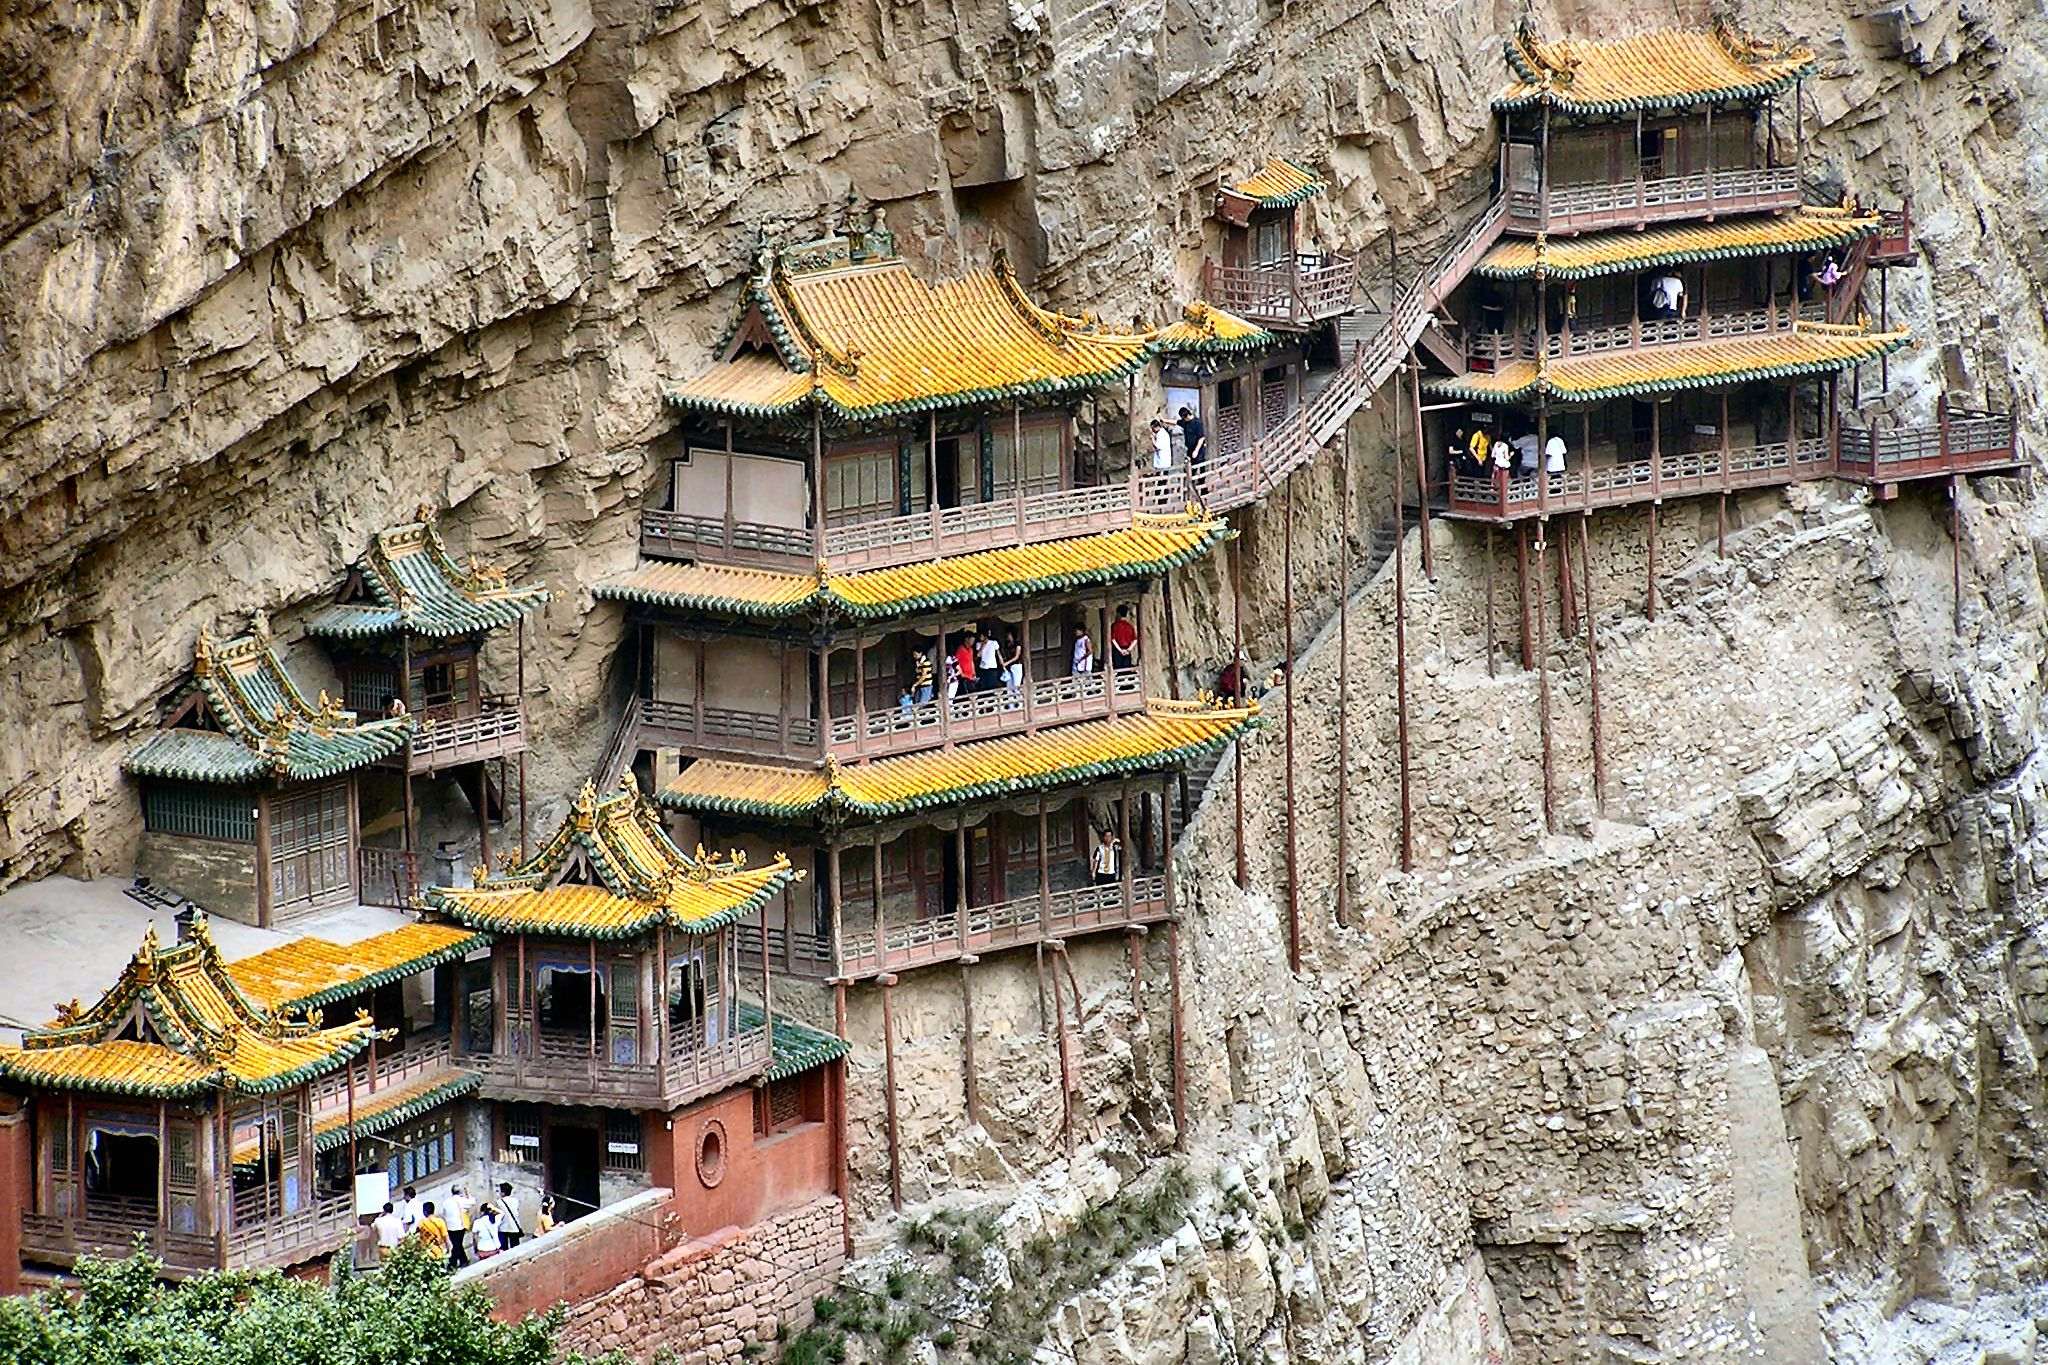 The Datong Hanging Temple